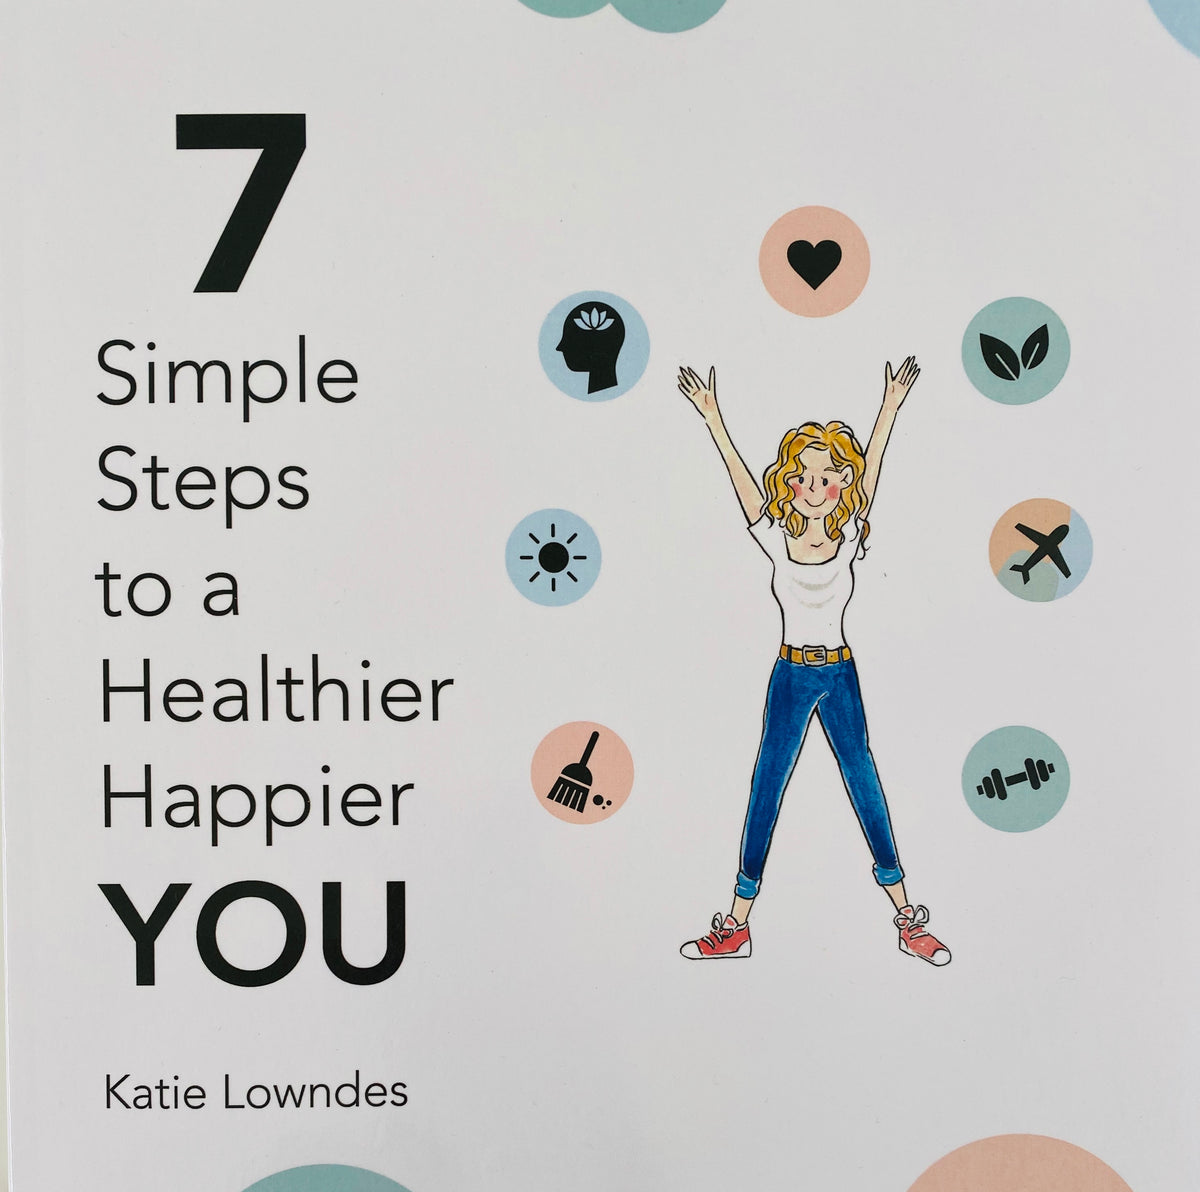 Katies Beauty Kitchen | 7 Simple Steps to a Healthier Happier YOU | Katies Beauty Kitchen